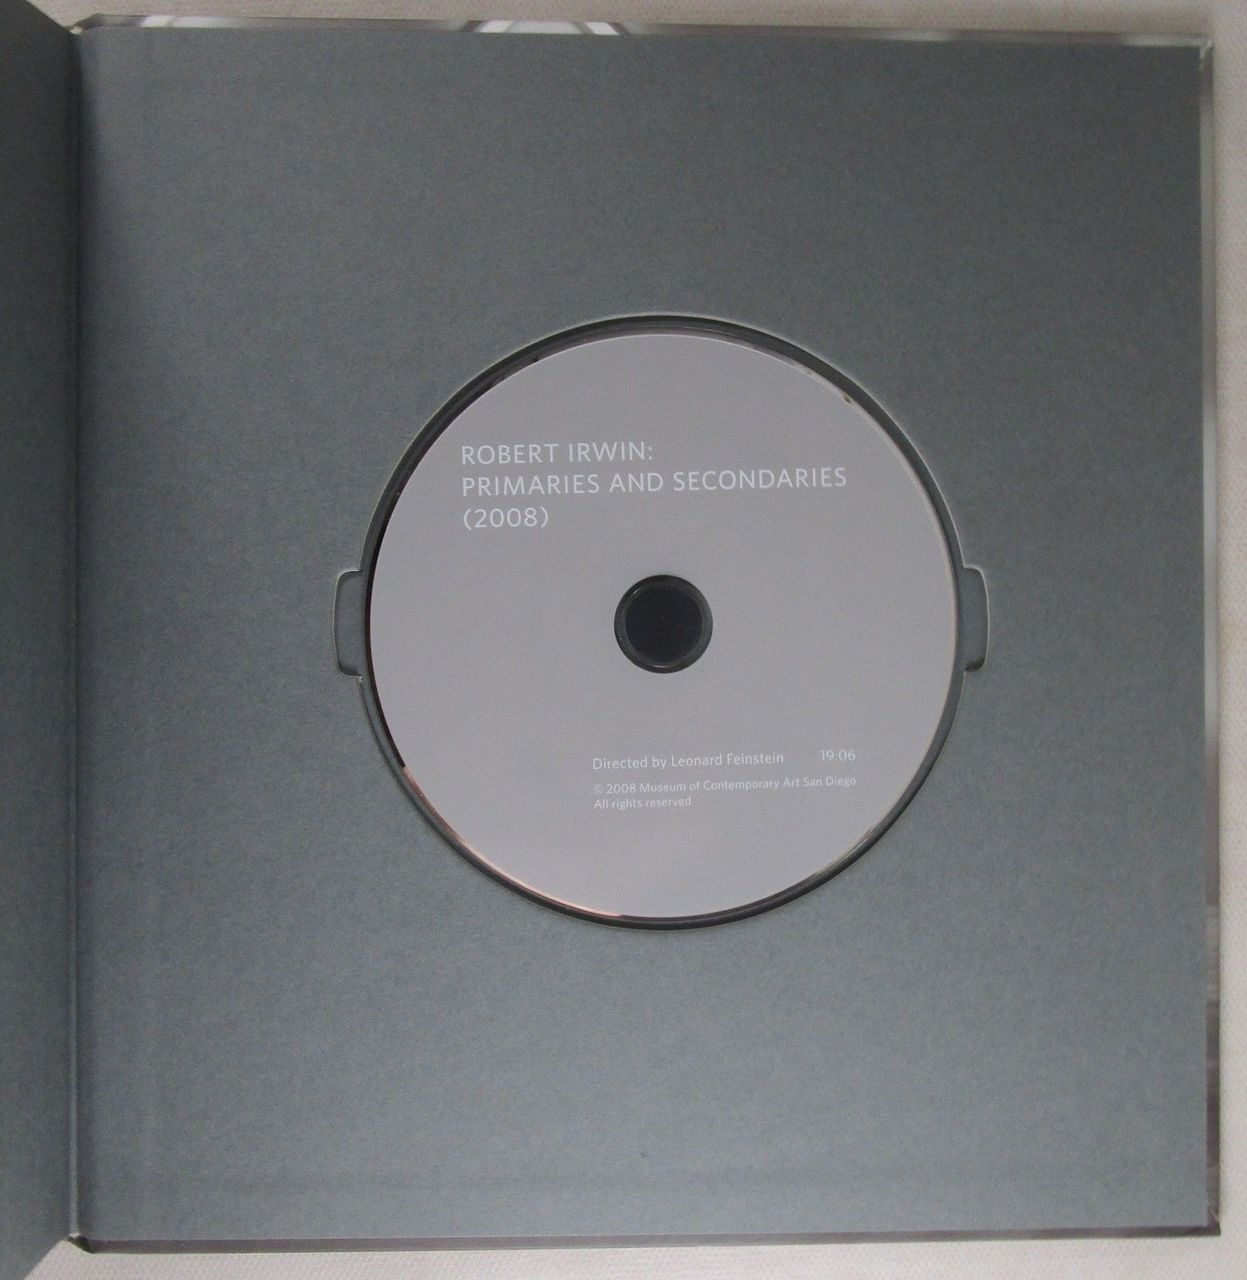 ROBERT IRWIN: PRIMARIES AND SECONDARIES - 2008 [+DVD]